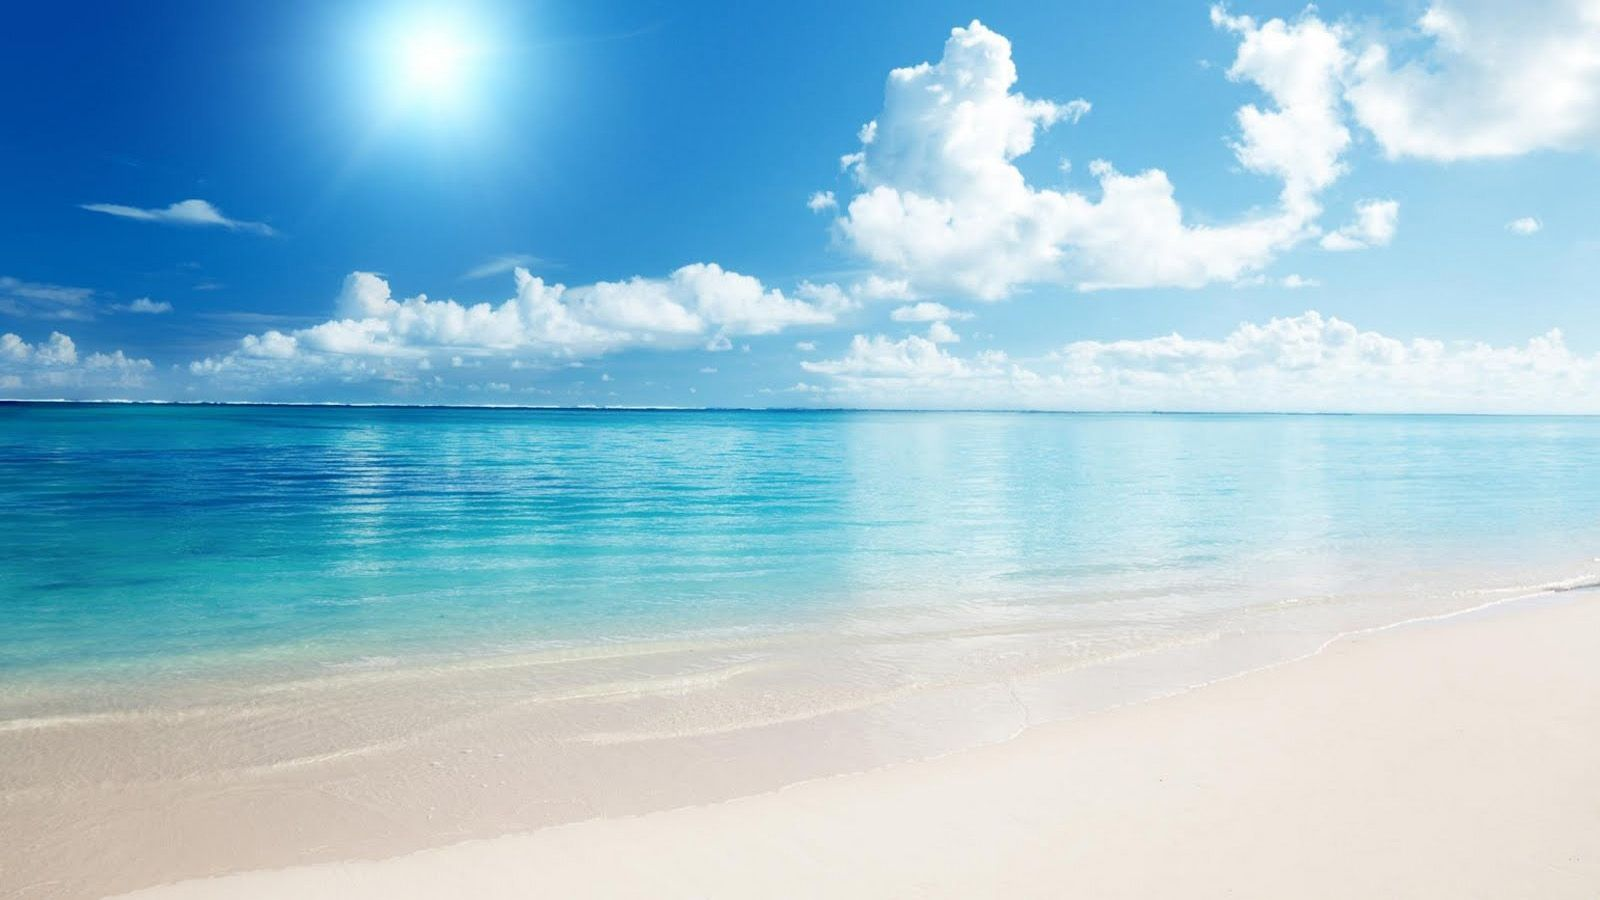 Free Cool Background Beach Download Free Cool Background Beach Download Download Free Cool Background Beach Download From The Above Display Resolut Fisika